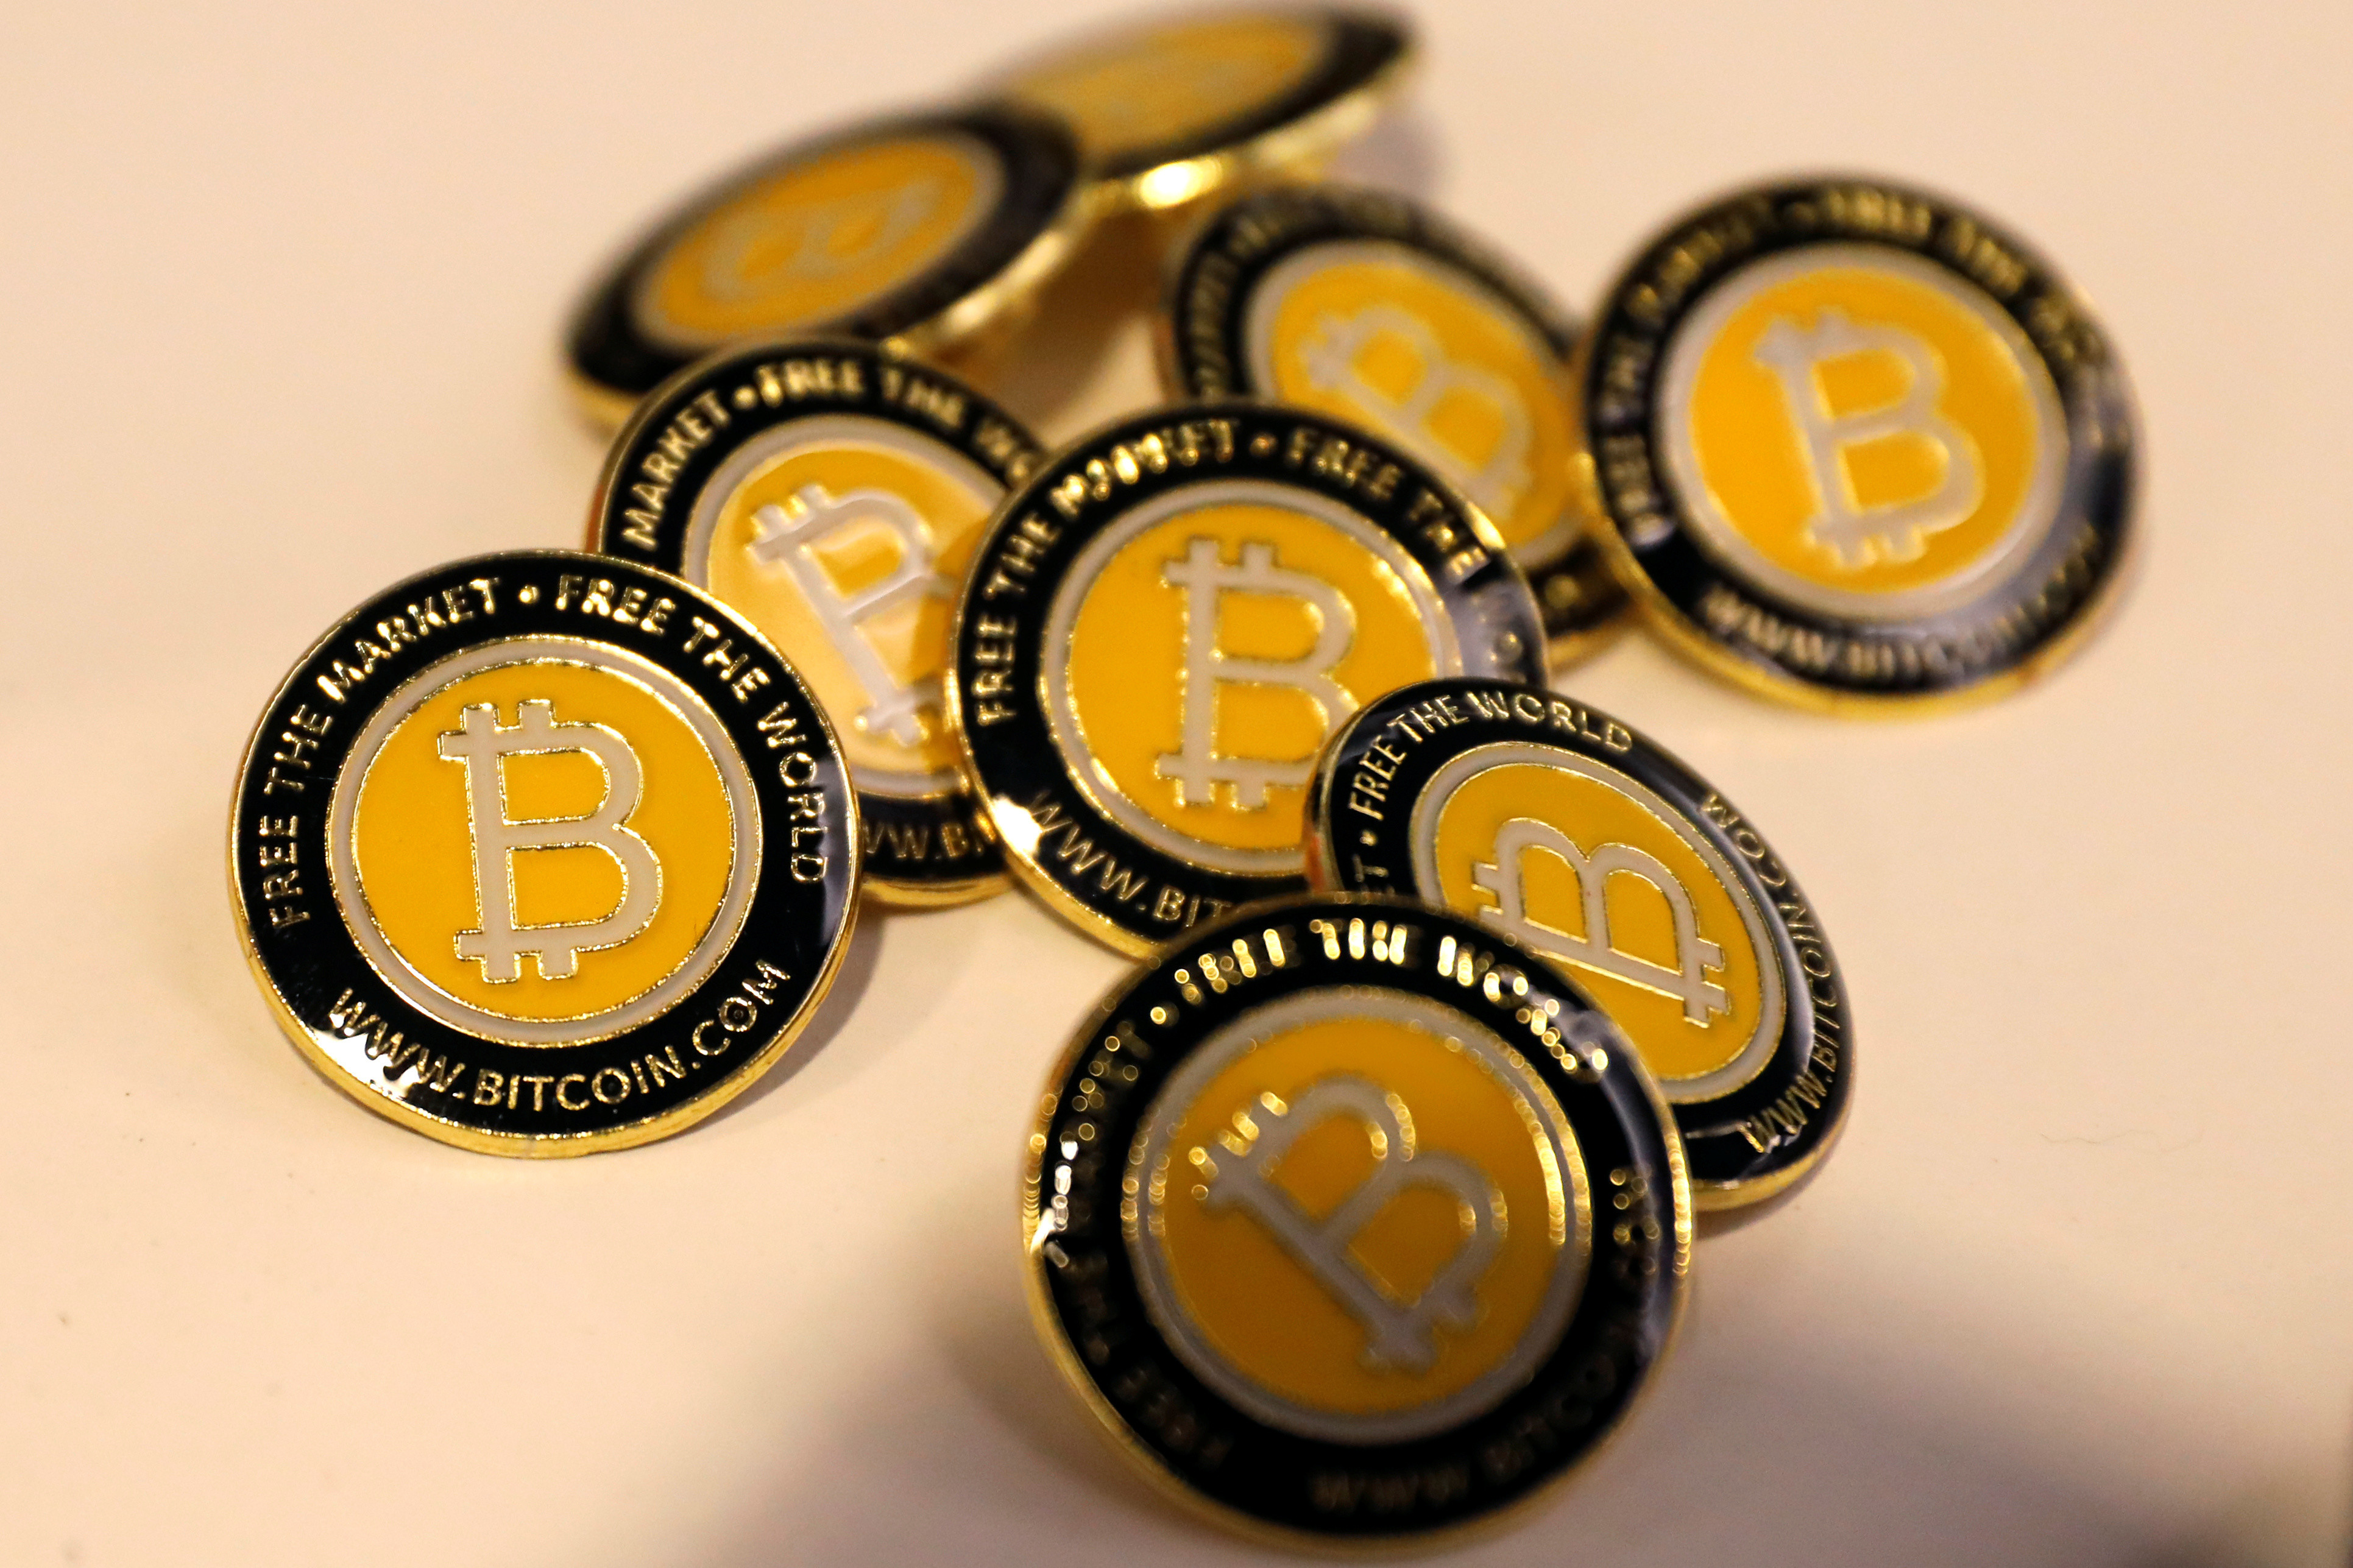 image of Bitcoin buttons (Bitcoin is a cryptocurrency)